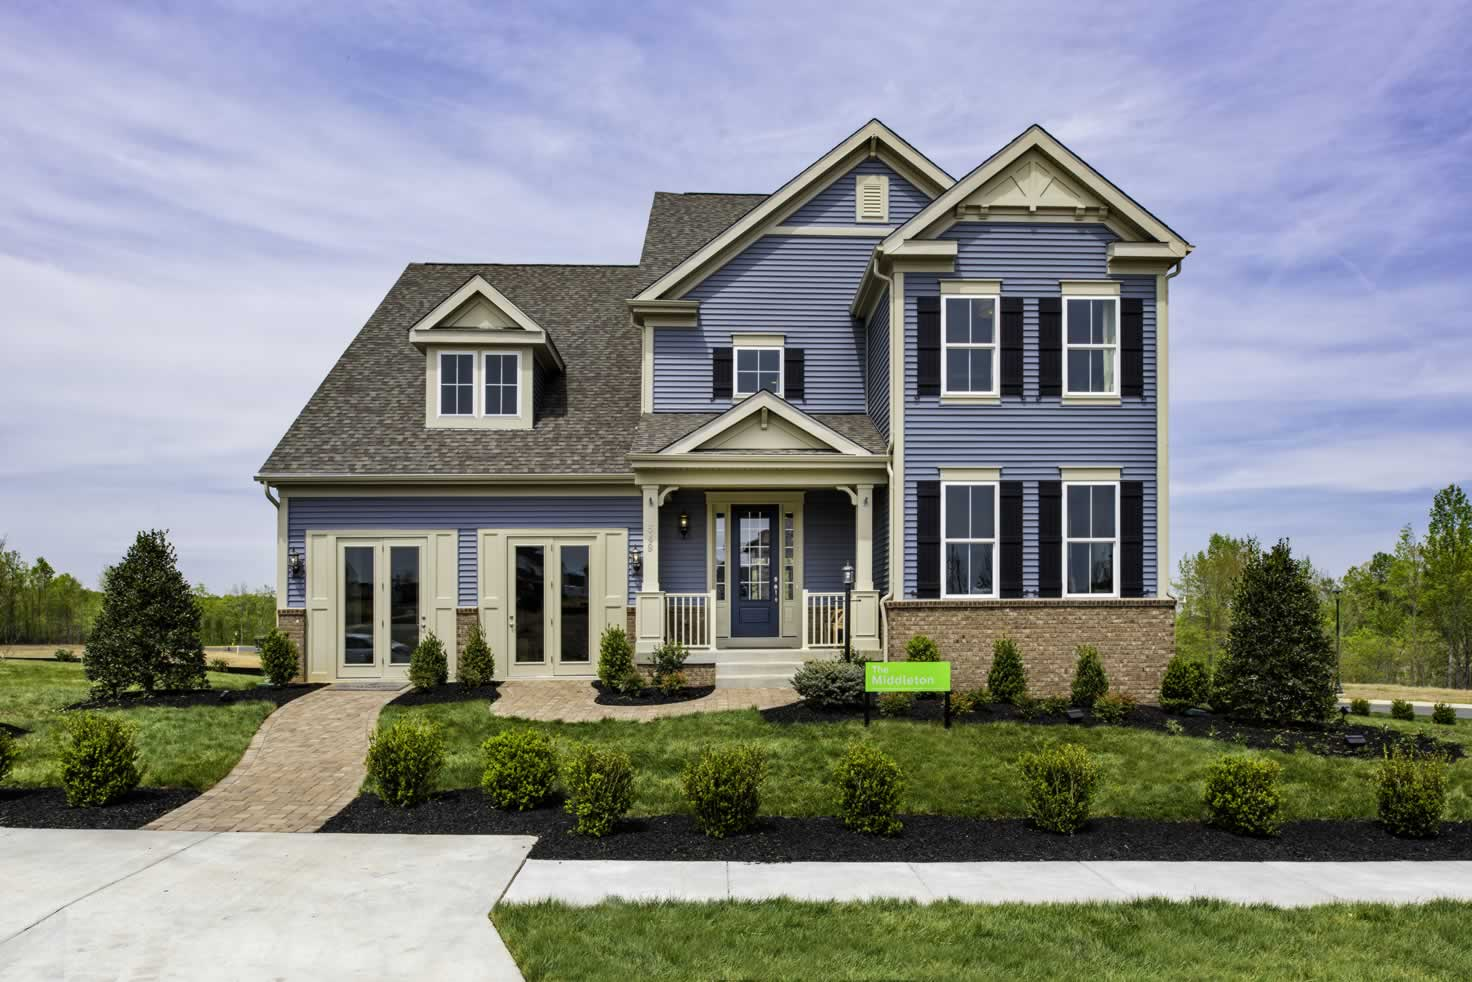 Build a Home on Your Lot | Middleton Model from Stanley Martin Custom Homes